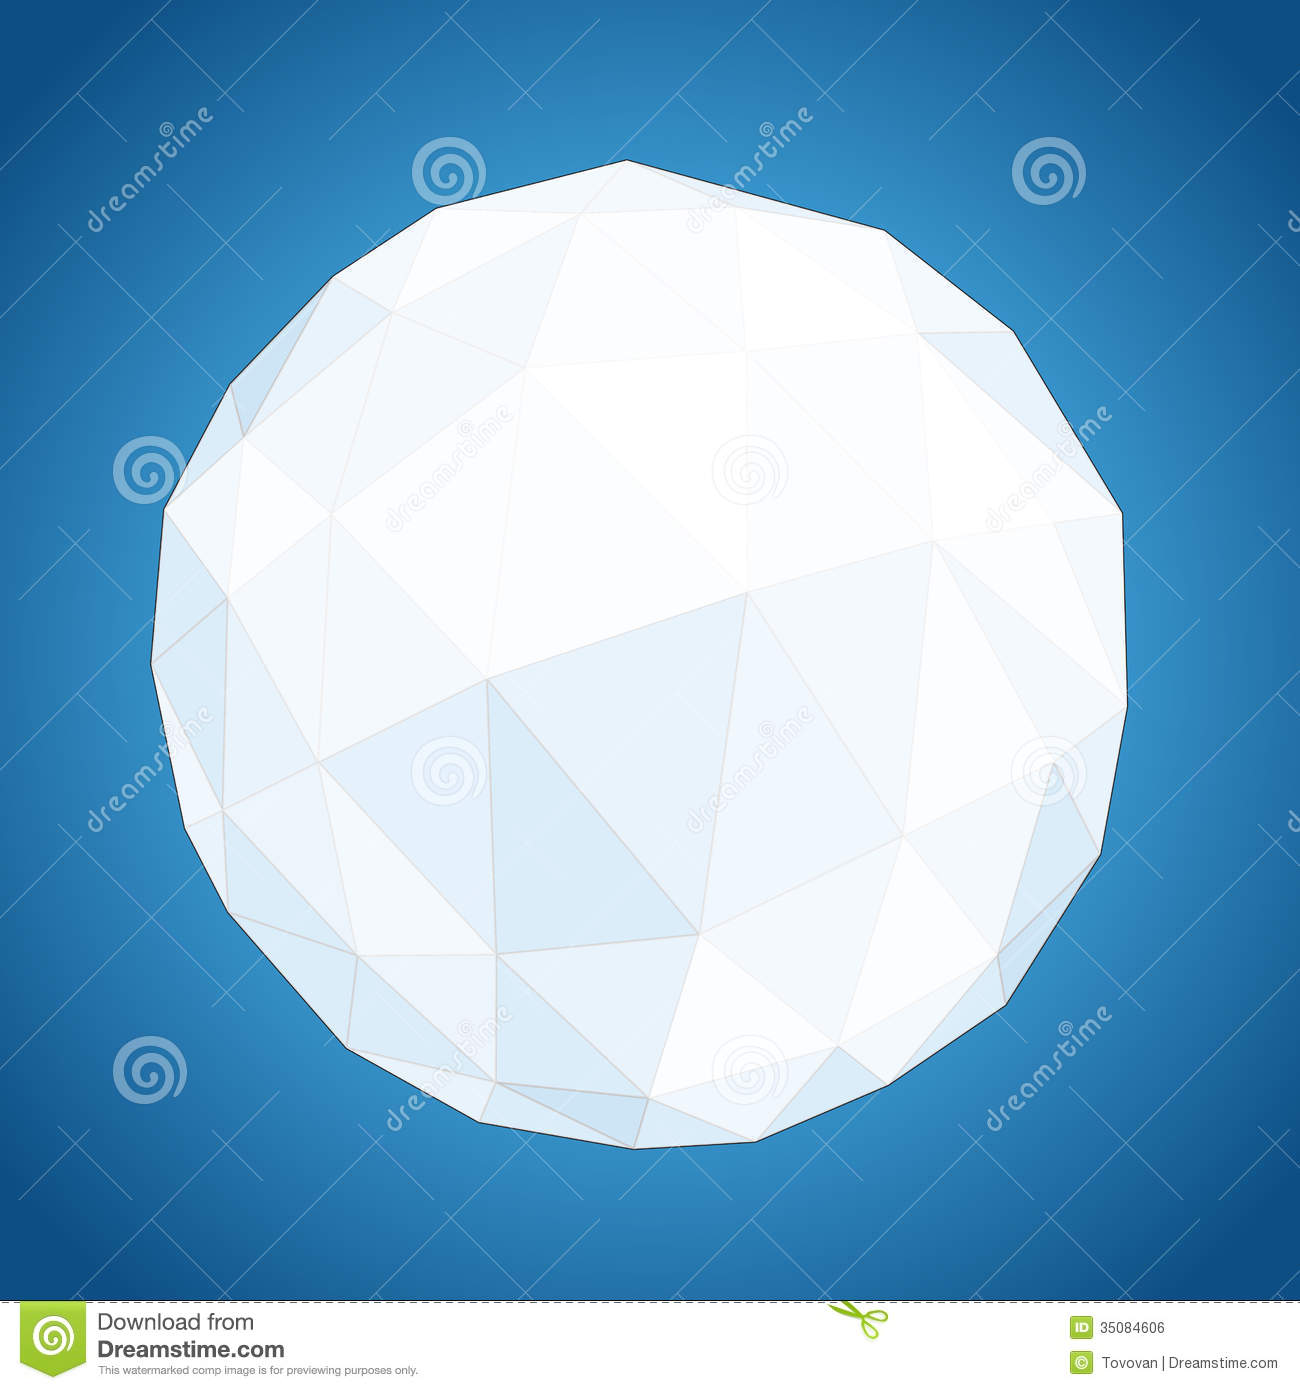 Abstract Geometric Paper Origami Sphere Stock Vector ... - photo#21